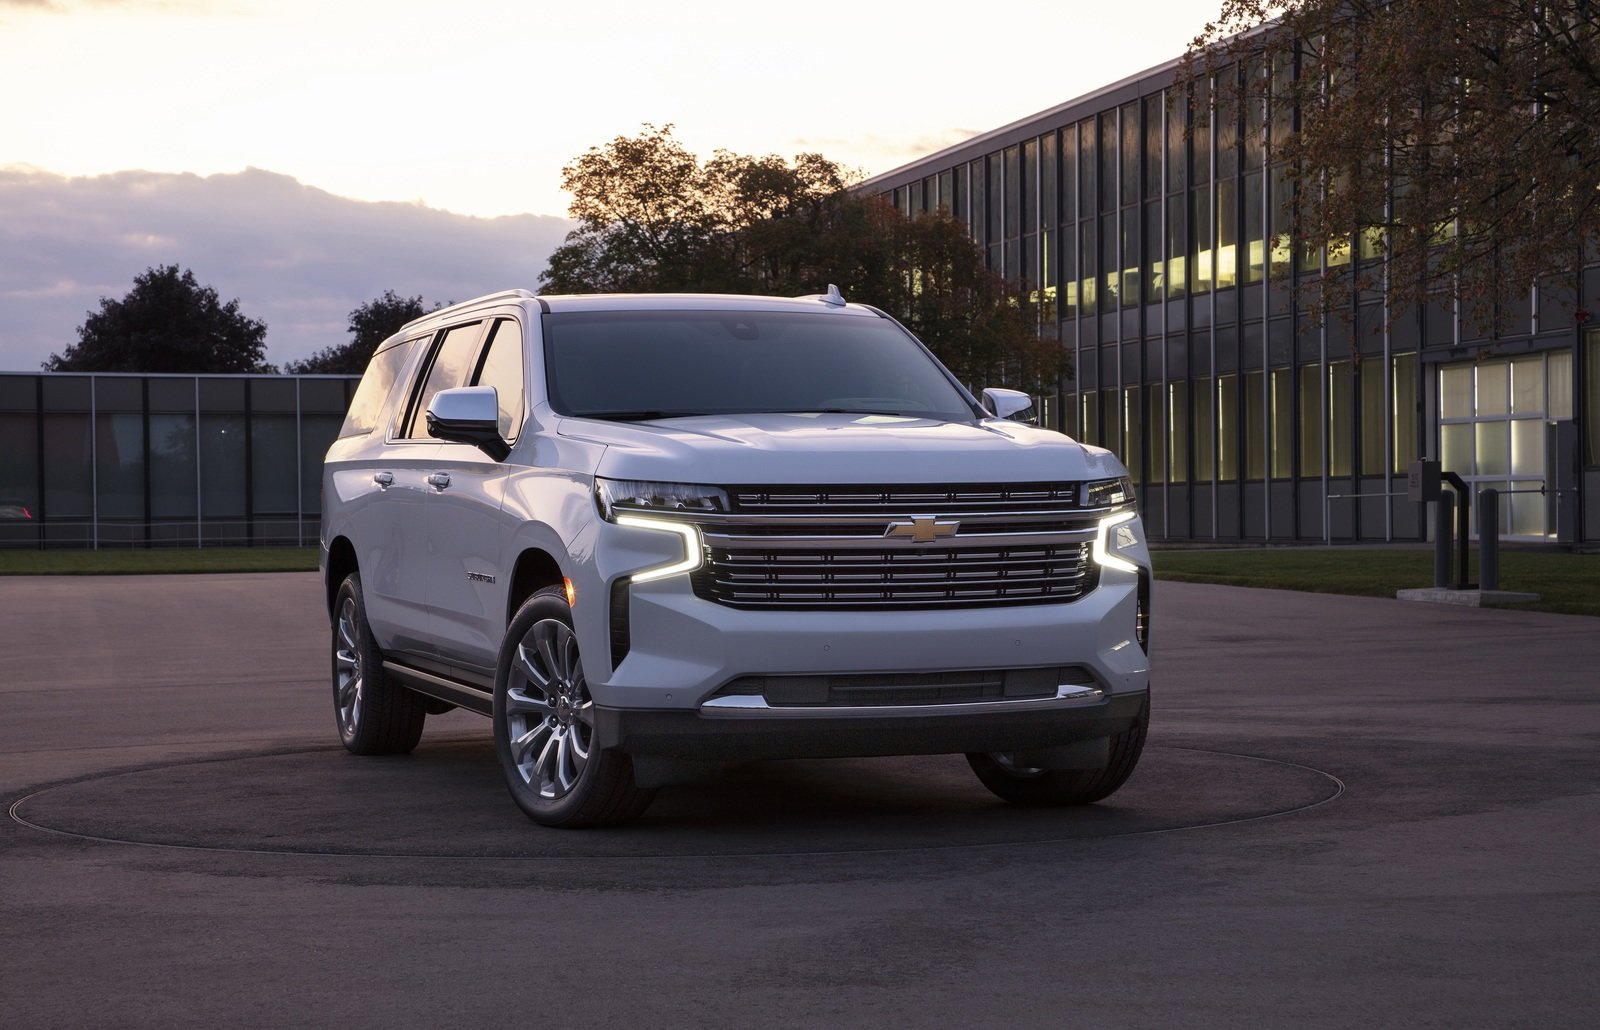 2021 Chevy Suburban 2021 Chevy Volt Price, Review, Mpg